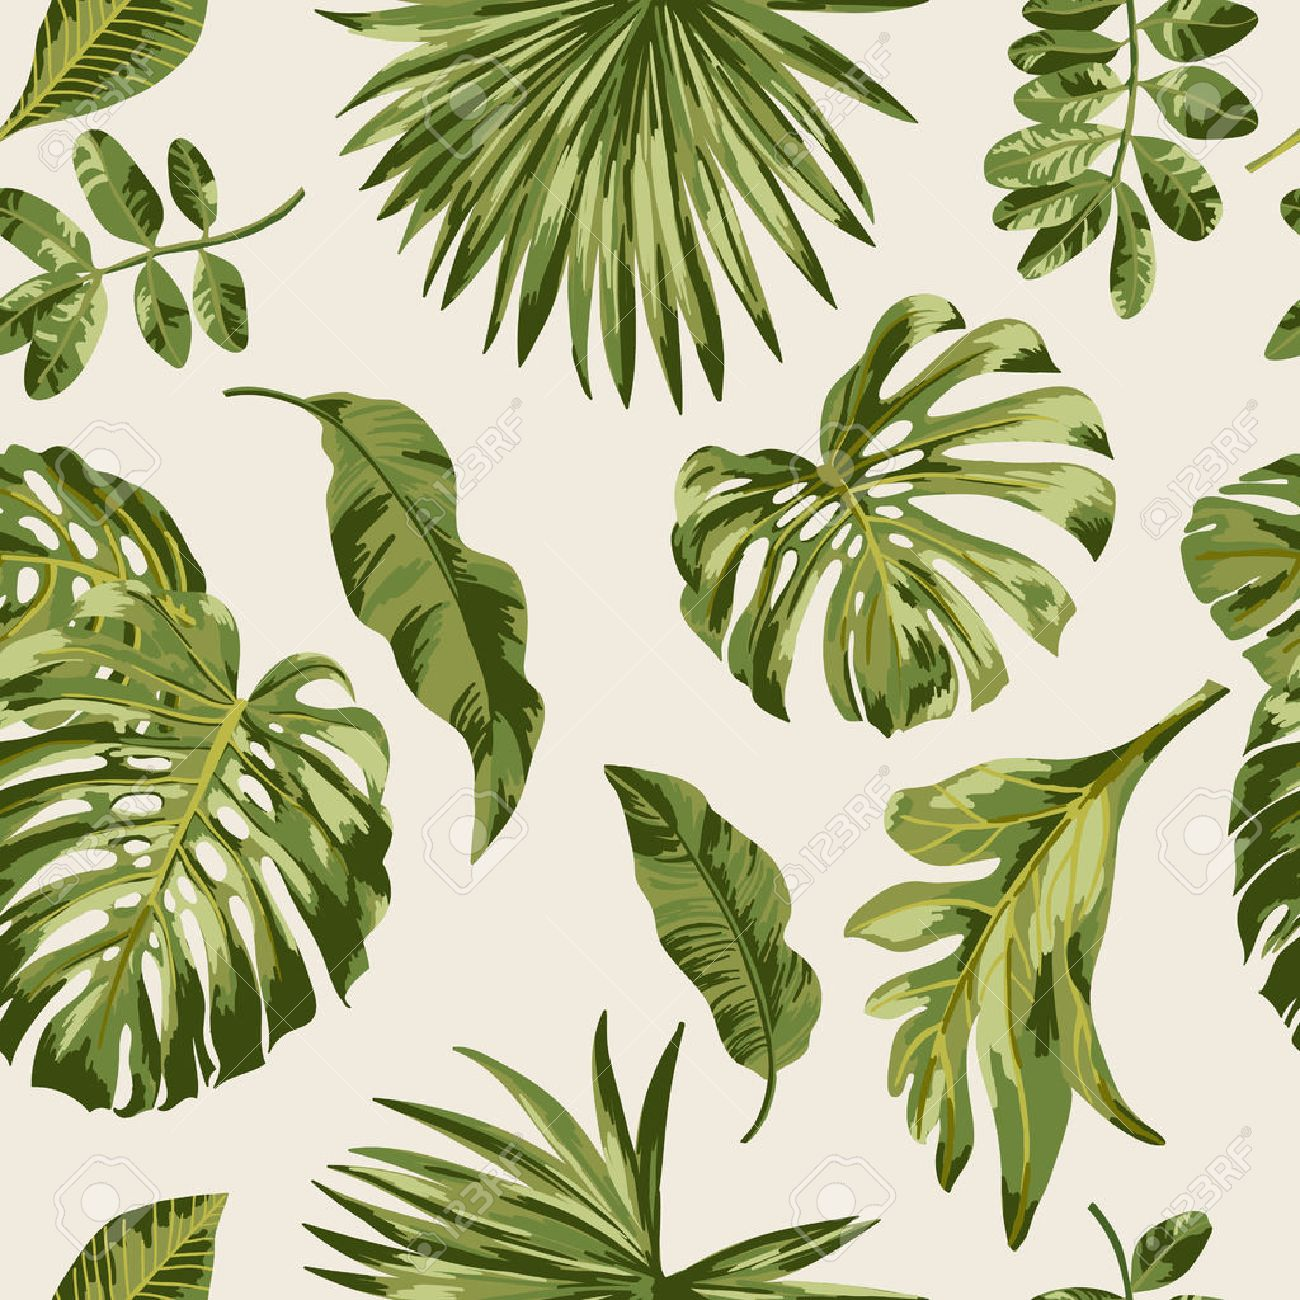 4 933 monstera leaf stock vector illustration and royalty free